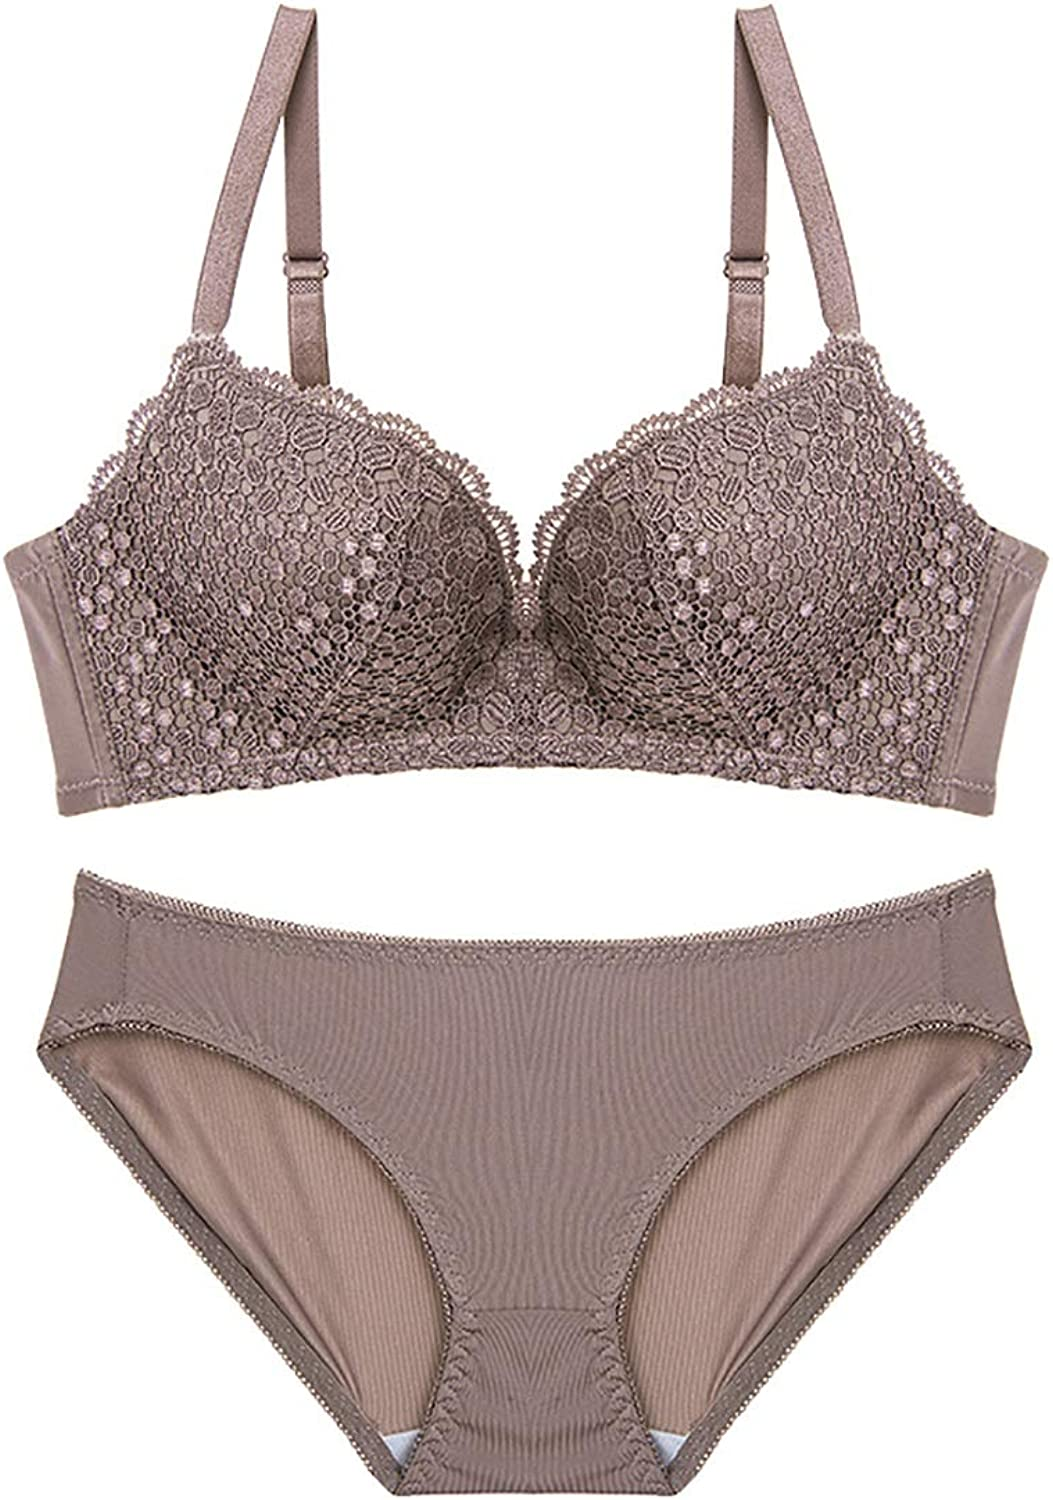 NICE' living hall Lace Embroidery Wave Points Comfortably Gathered Sexy Bra Set, Sponge, no Steel Ring, Adjustable Chest Type, Four Rows of Three Buckles. Comfortable